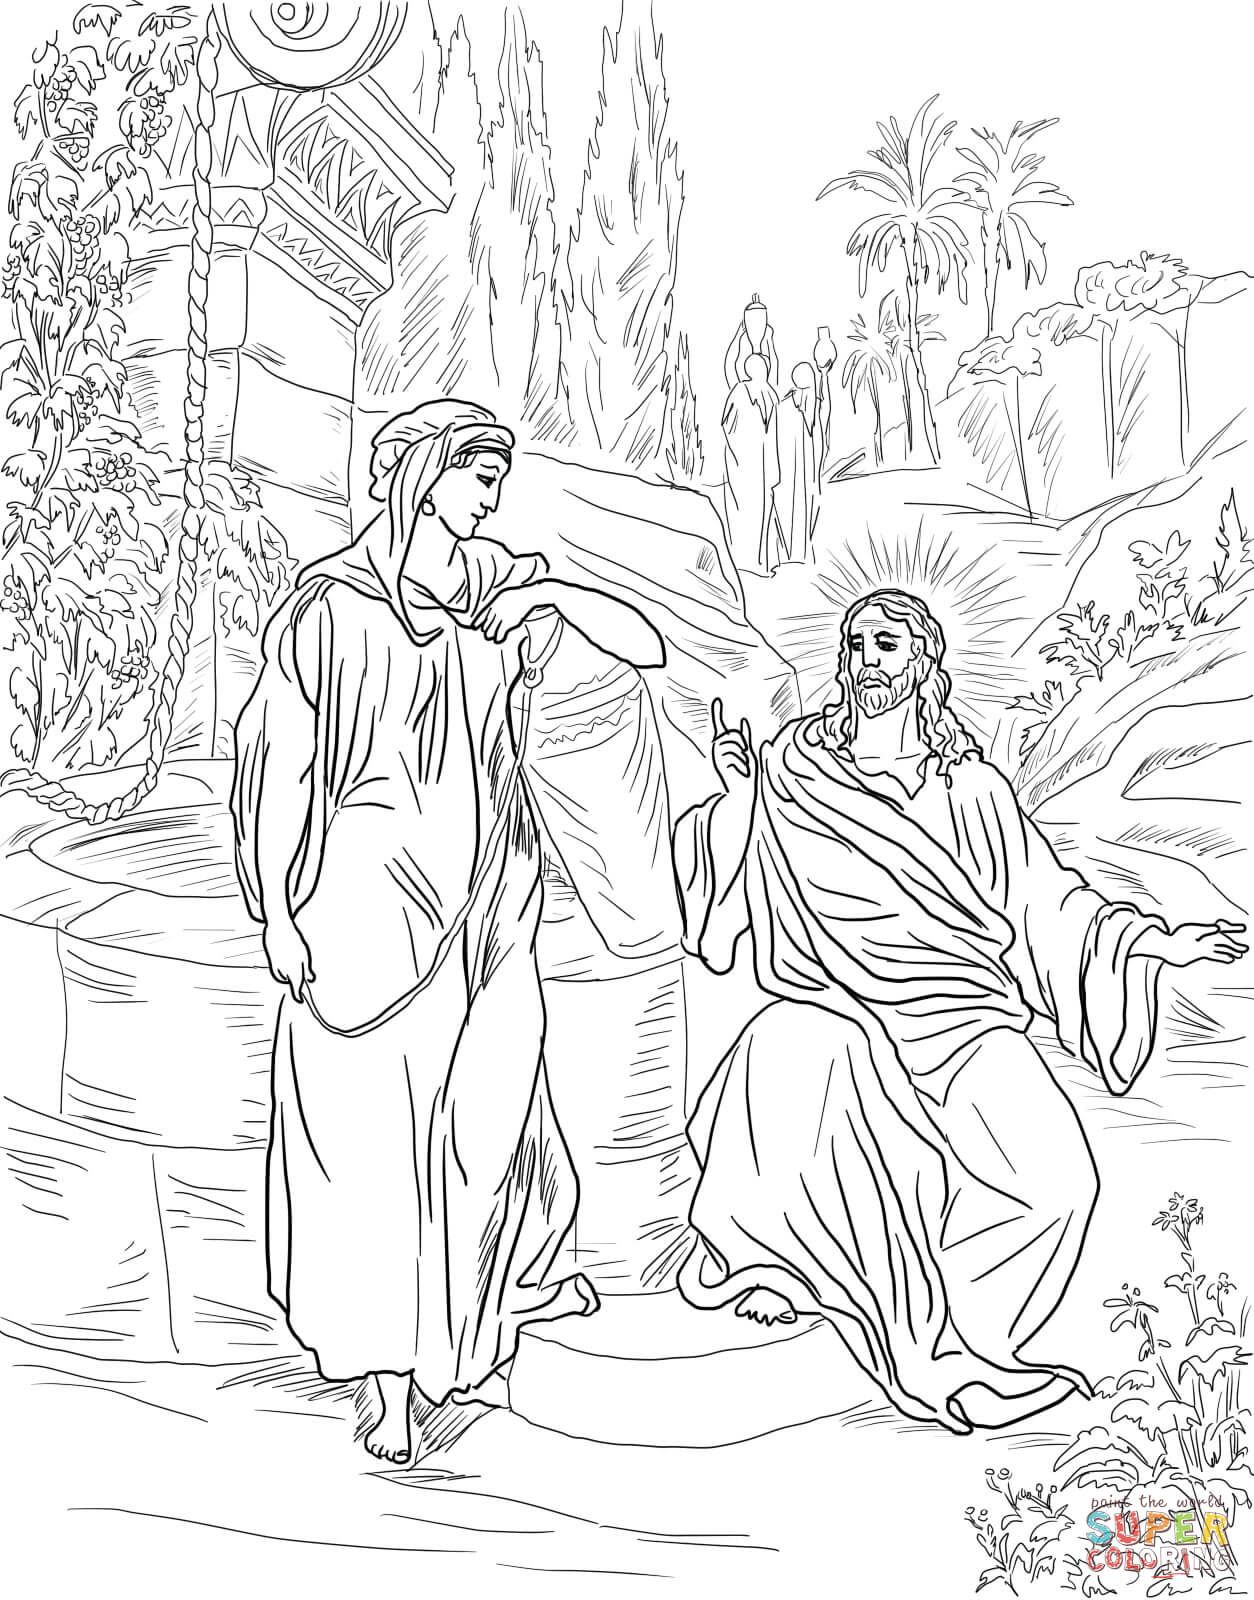 Jesus And The Samaritan Woman At The Well By Gustave Dore